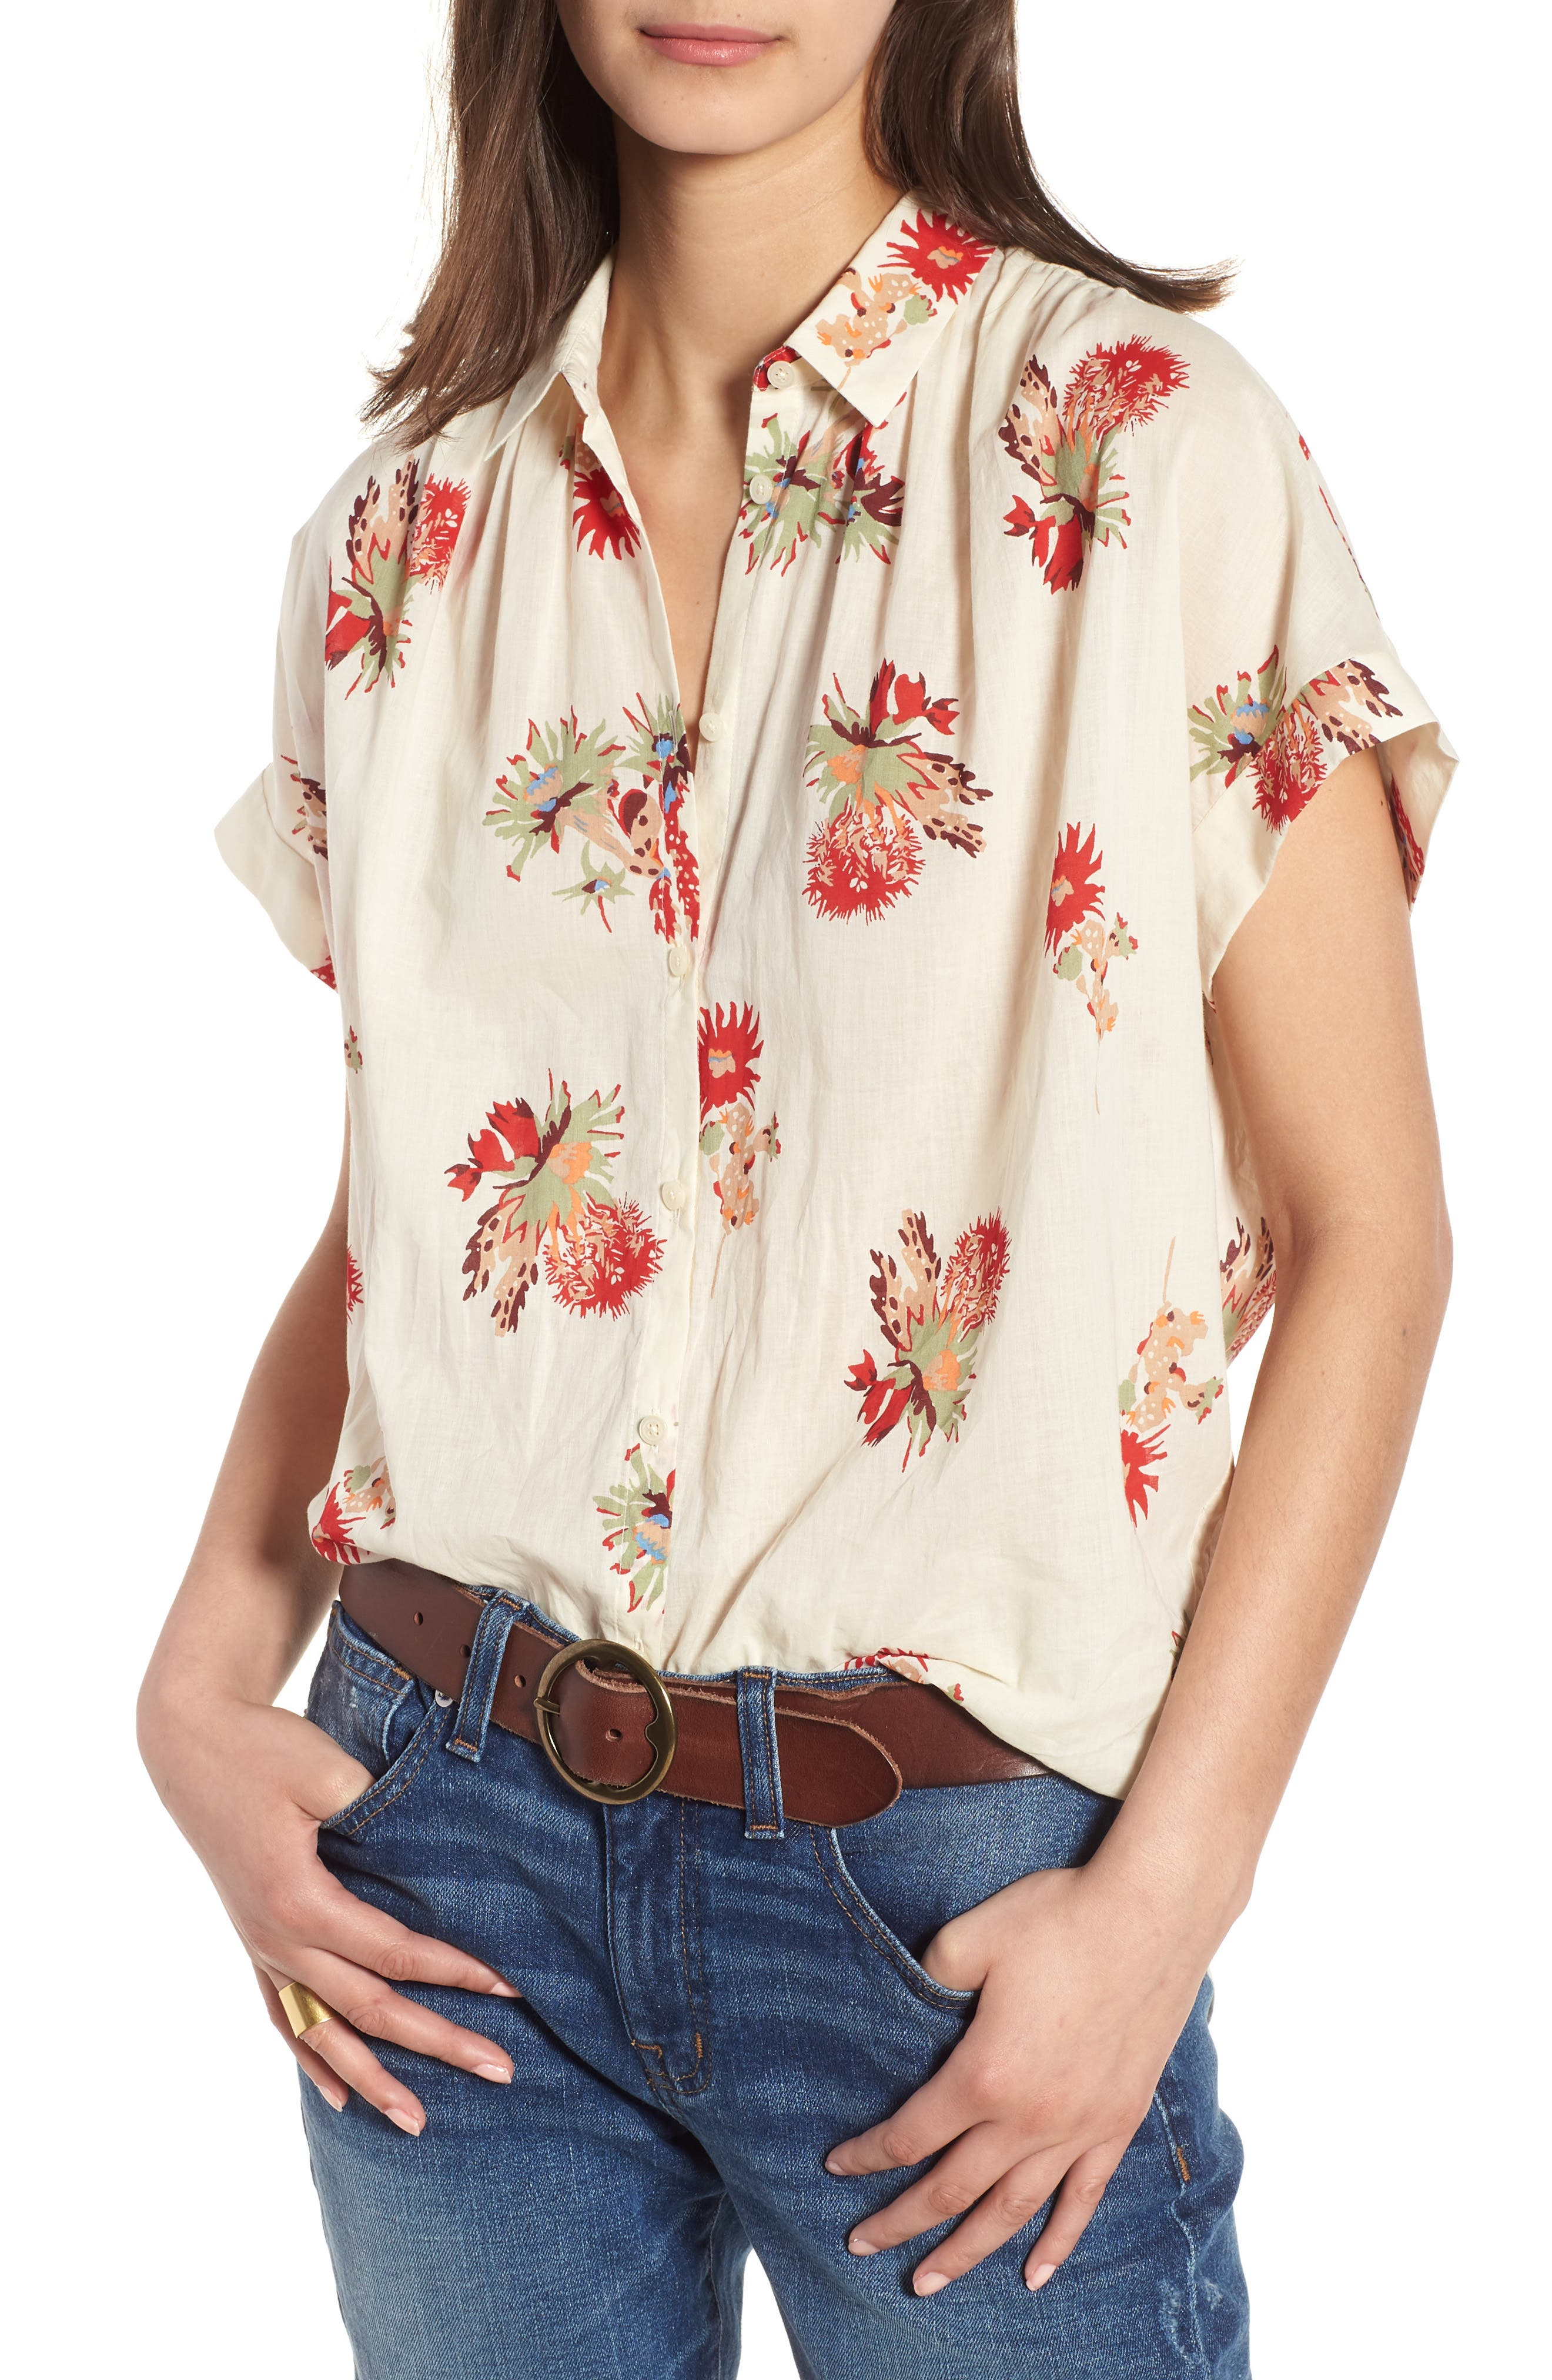 Central Cactus Floral Shirt,                         Main,                         color, 100